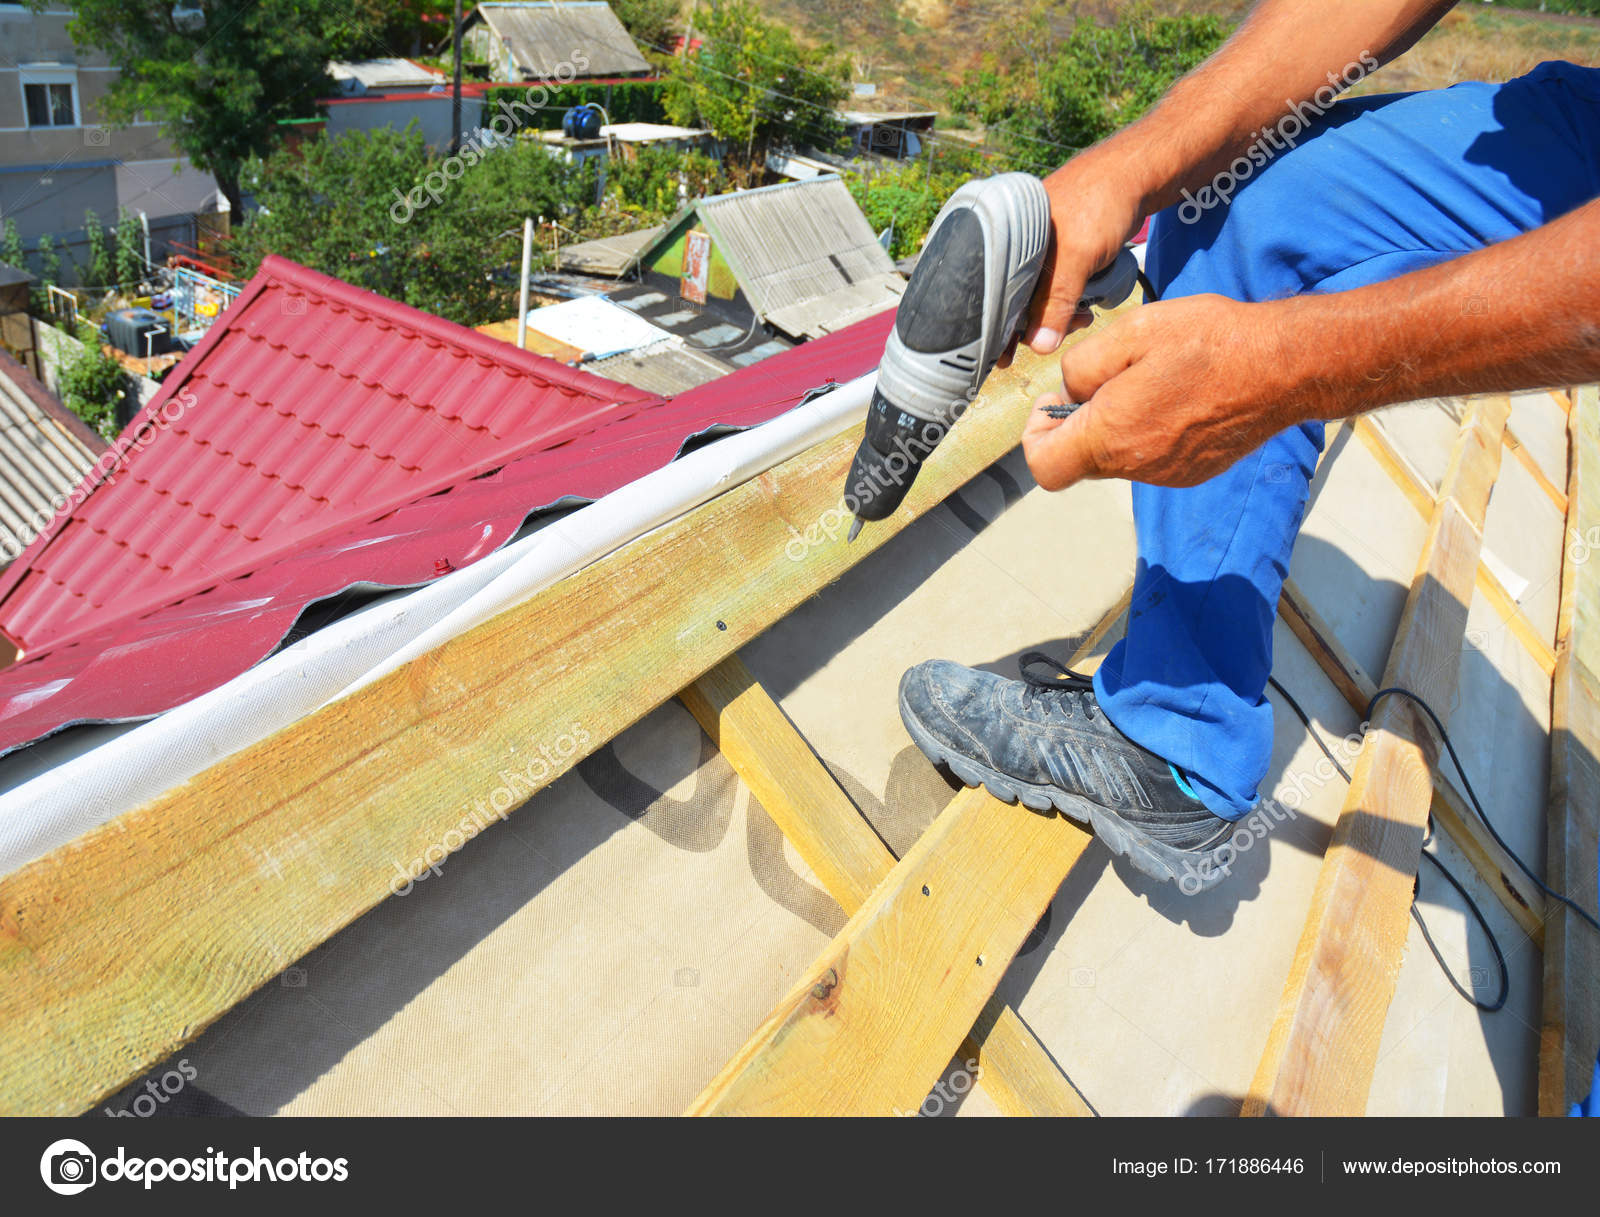 Roofing contractor installing metal roof tile for roof repair after roofing contractor installing metal roof tile for roof repair after hurricane damage roofer repair roof ppazfo